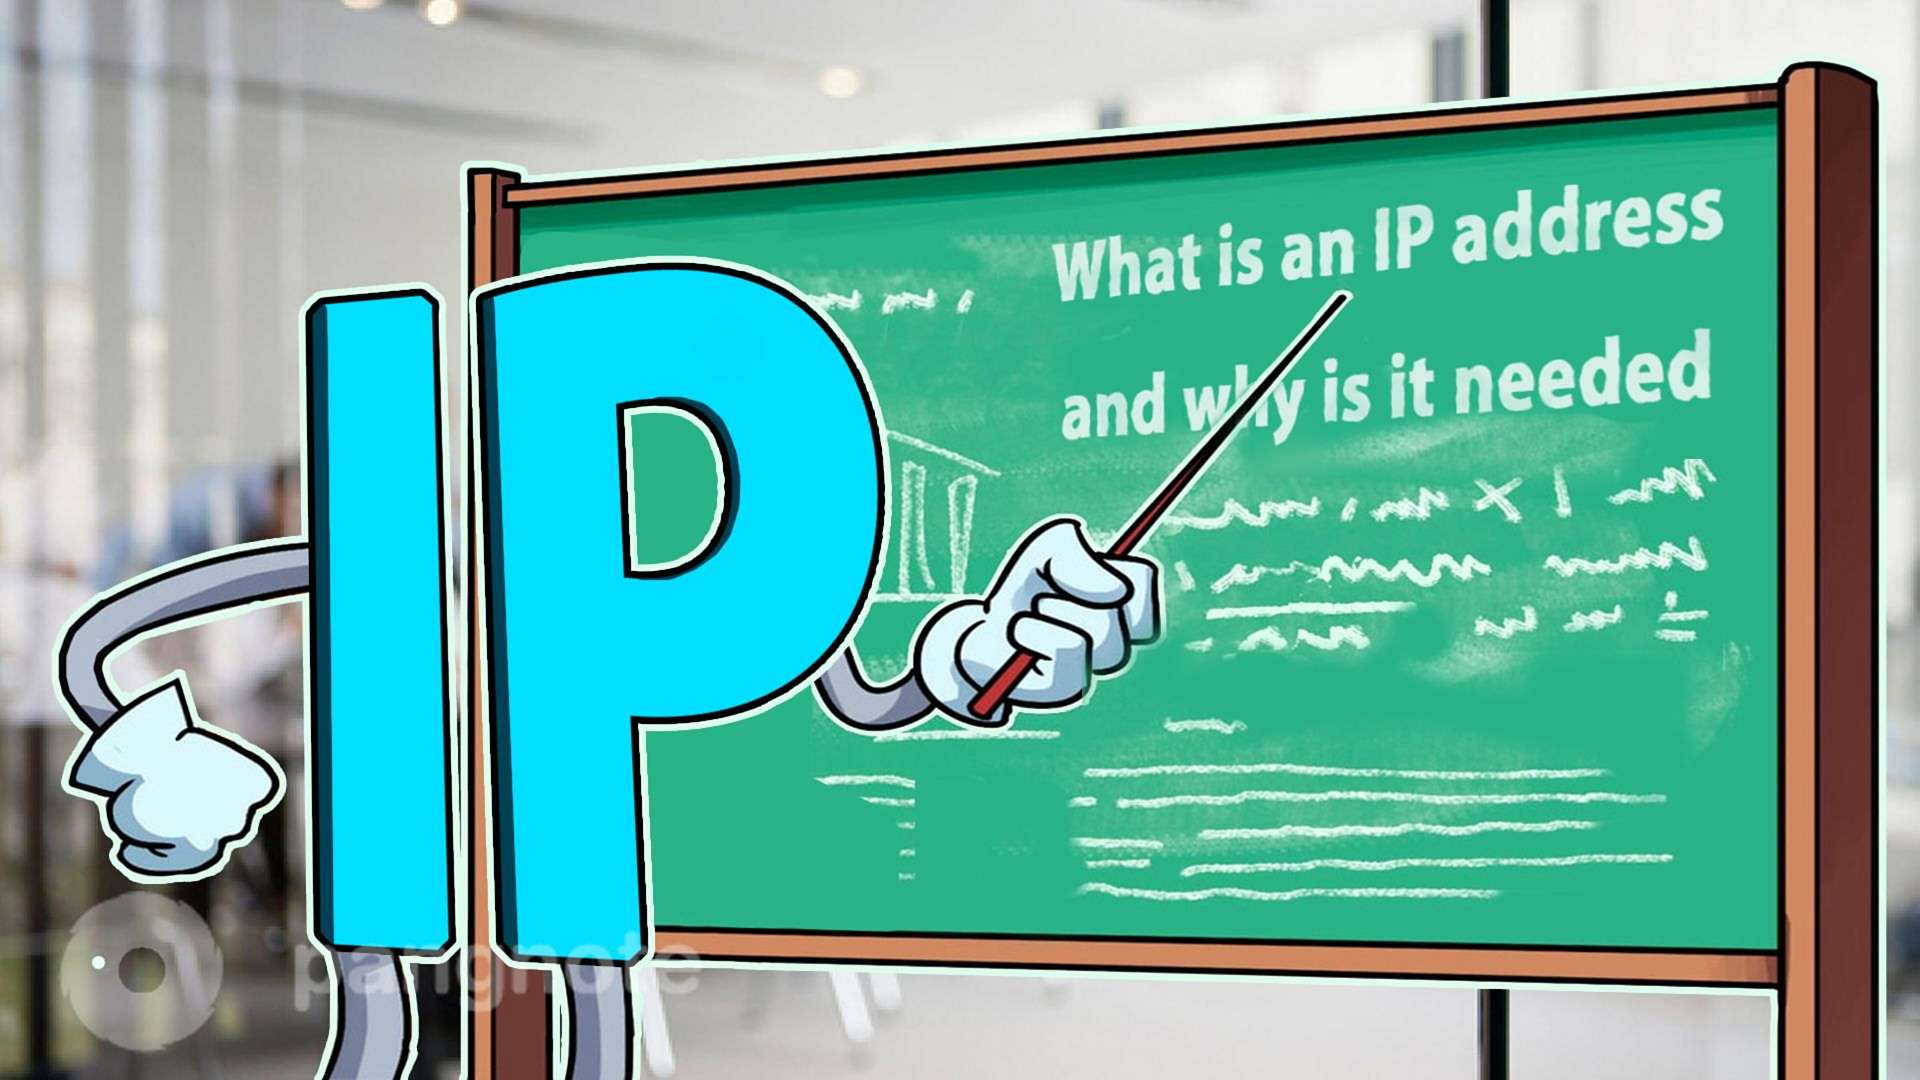 What is an IP address and why is it needed?